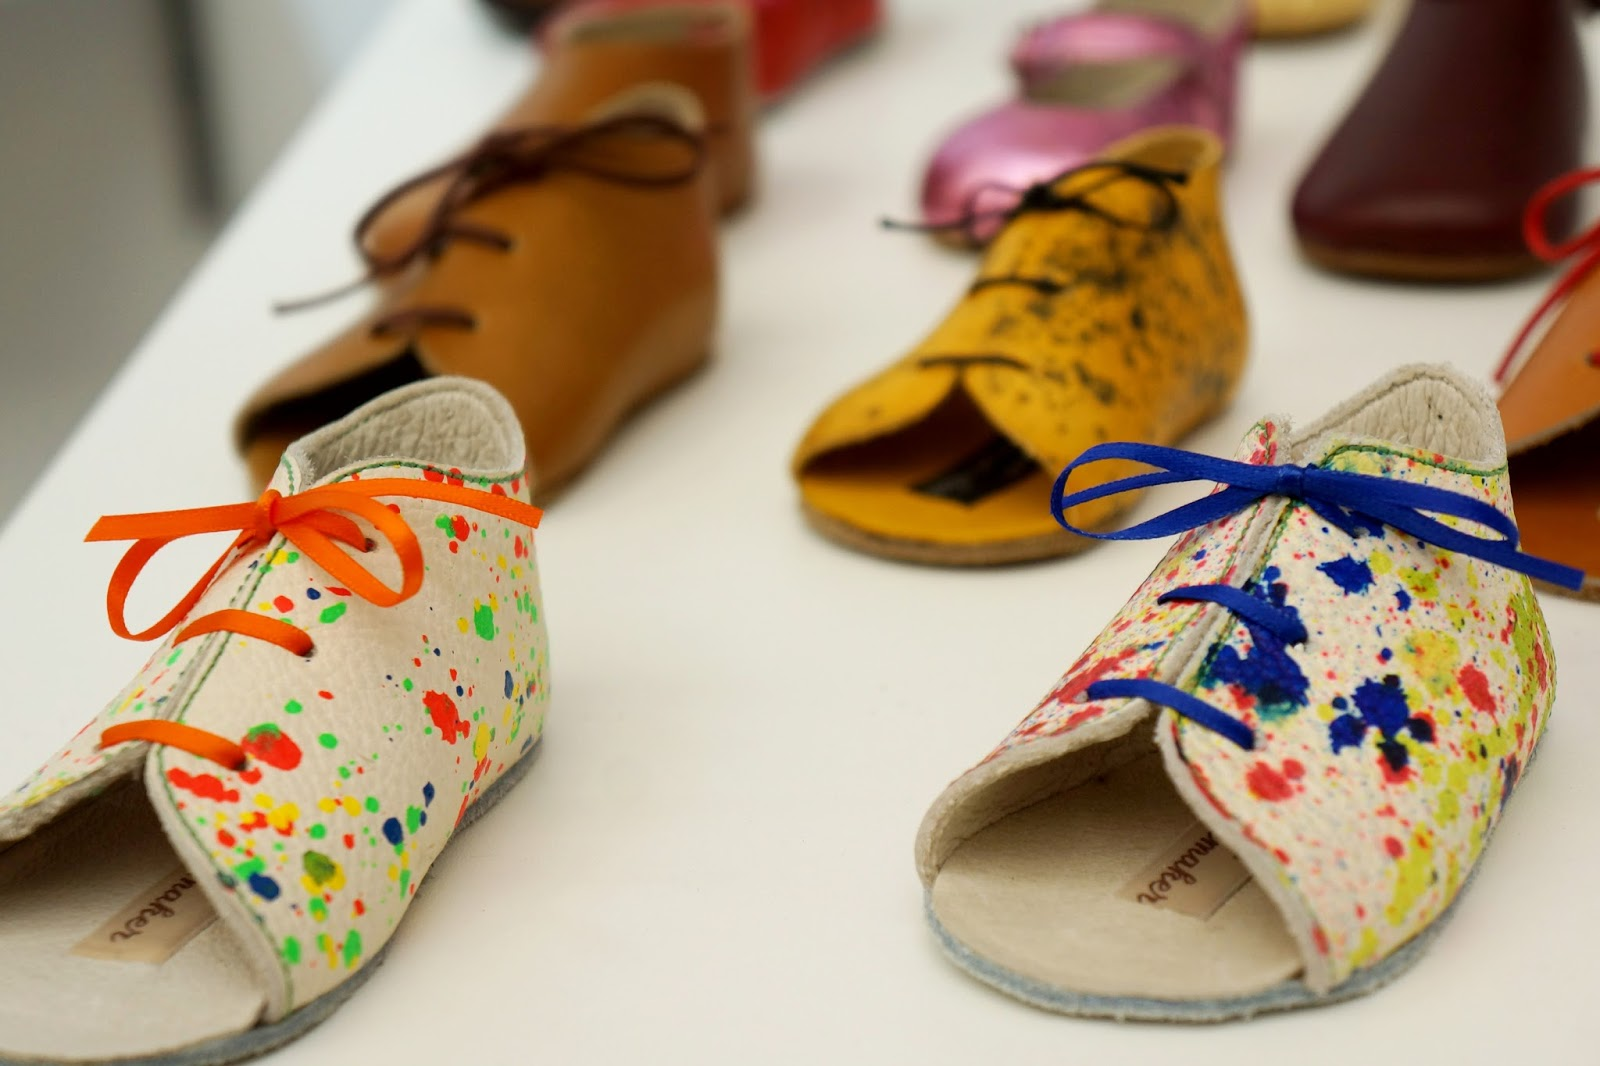 the little shoemaker at bubble london 2015